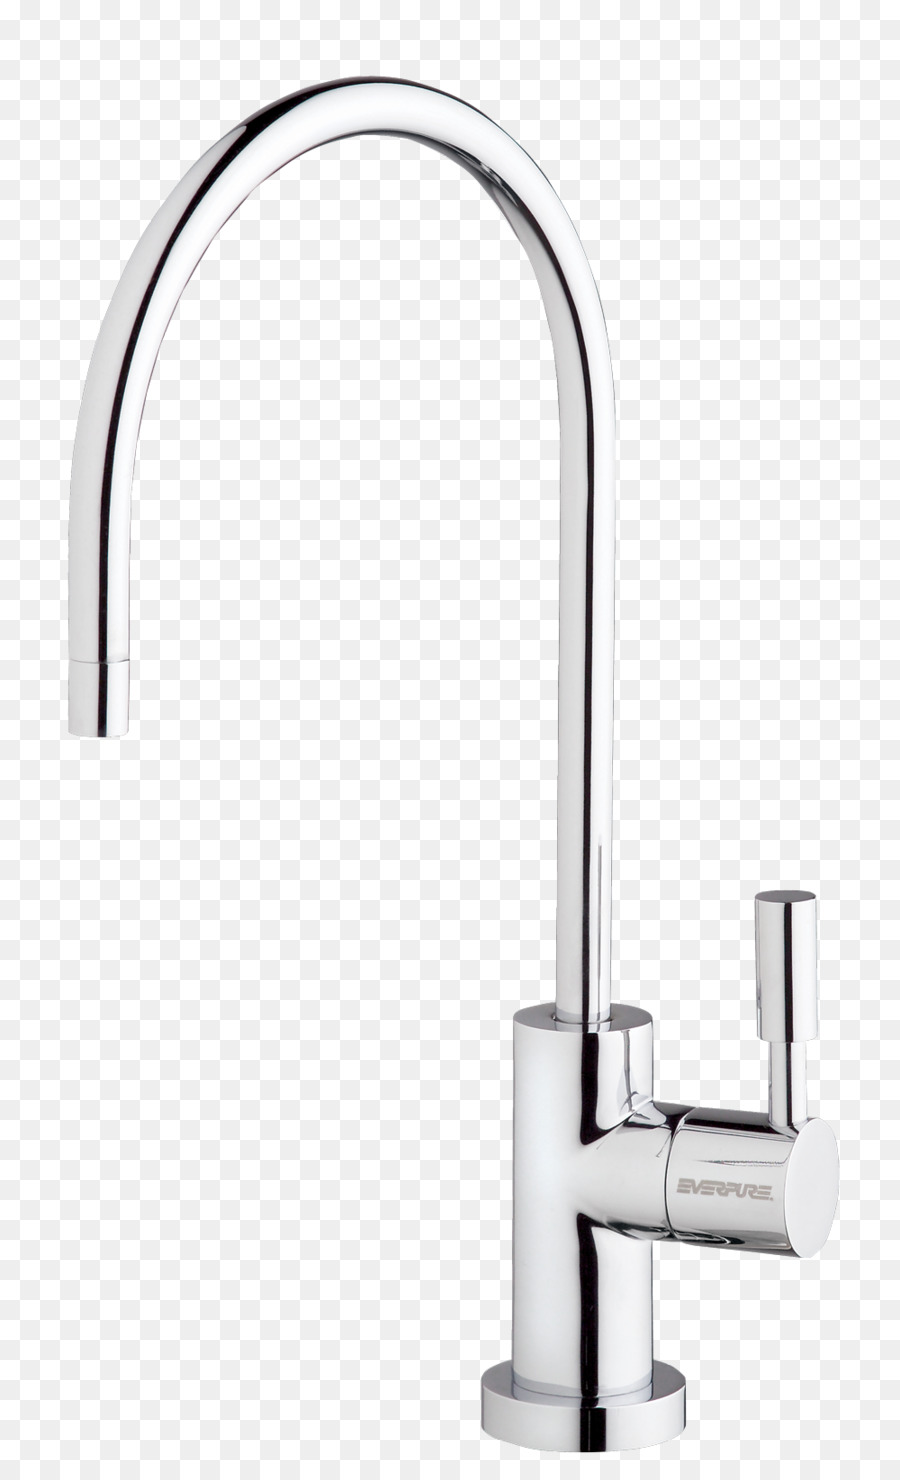 parche filtration cold faucets min filter products faucet waterstone water